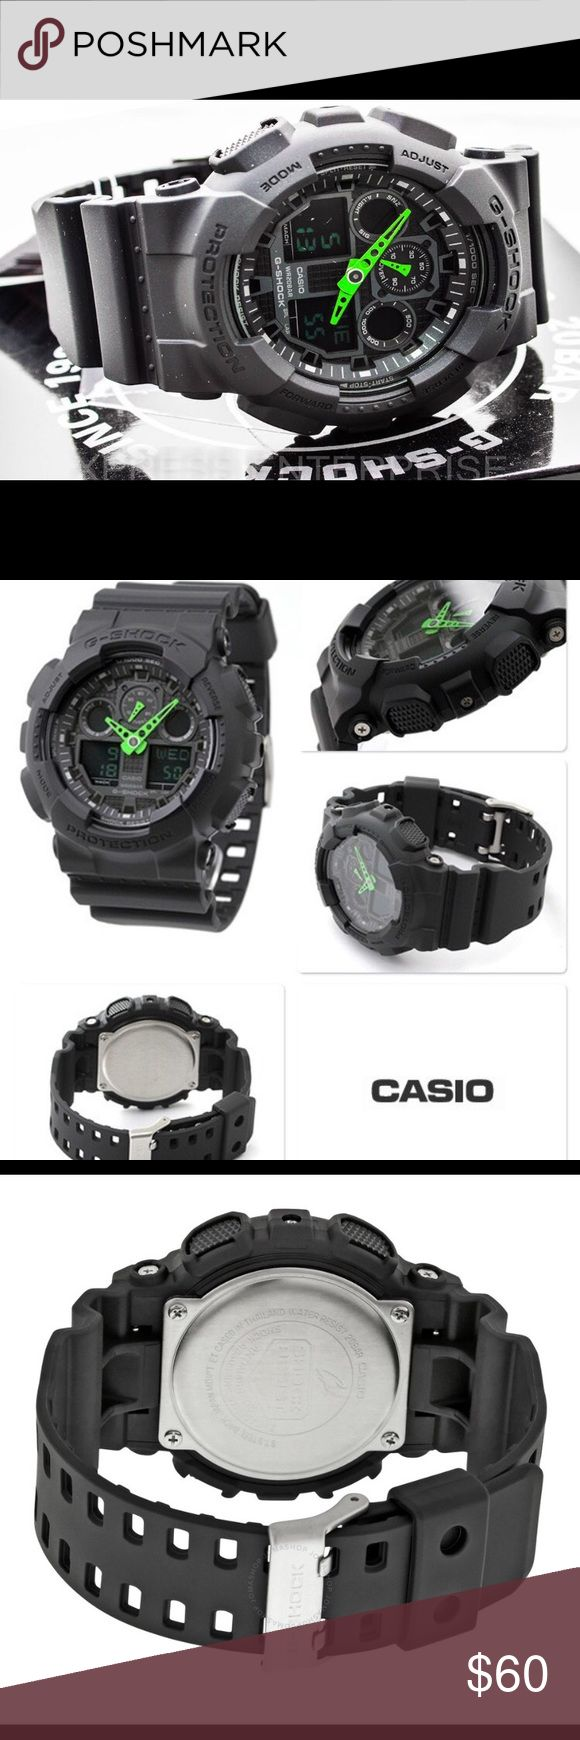 NWT Men's Casio G Shock GA100 Black/Green edition BRAND NEW G Shock GA100. Black with green analog, comes in full packaging! Great for Stylish casual everyday wearing! In stock, ready to be shipped. We ship within 24 hours, you will receive it within 1-3 business days! Our guaranteed! Casio Accessories Watches